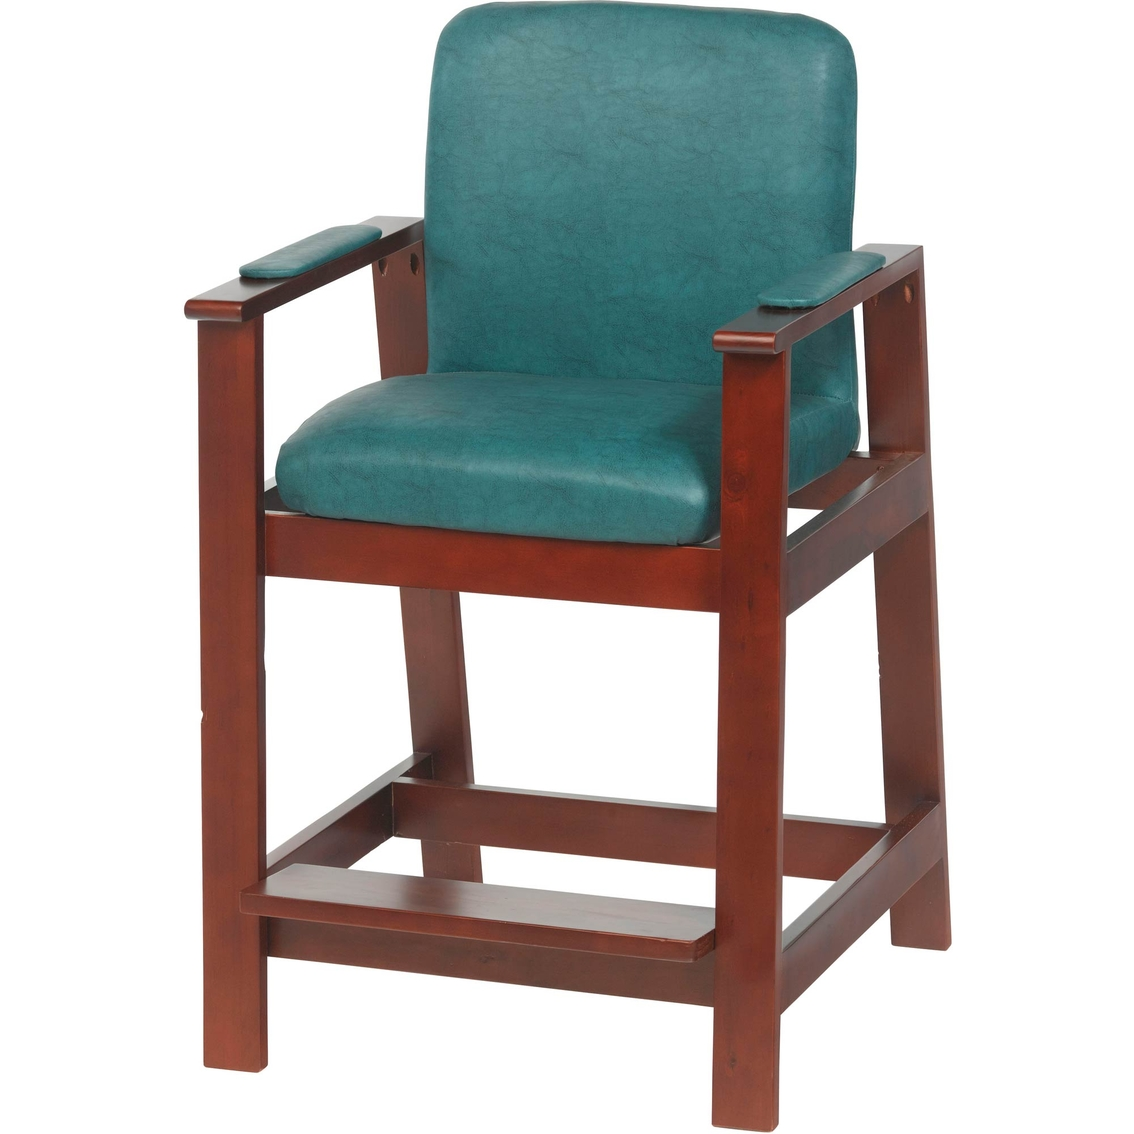 Drive Medical Wooden High Hip Chair | Lift Chairs | Beauty & Health ...